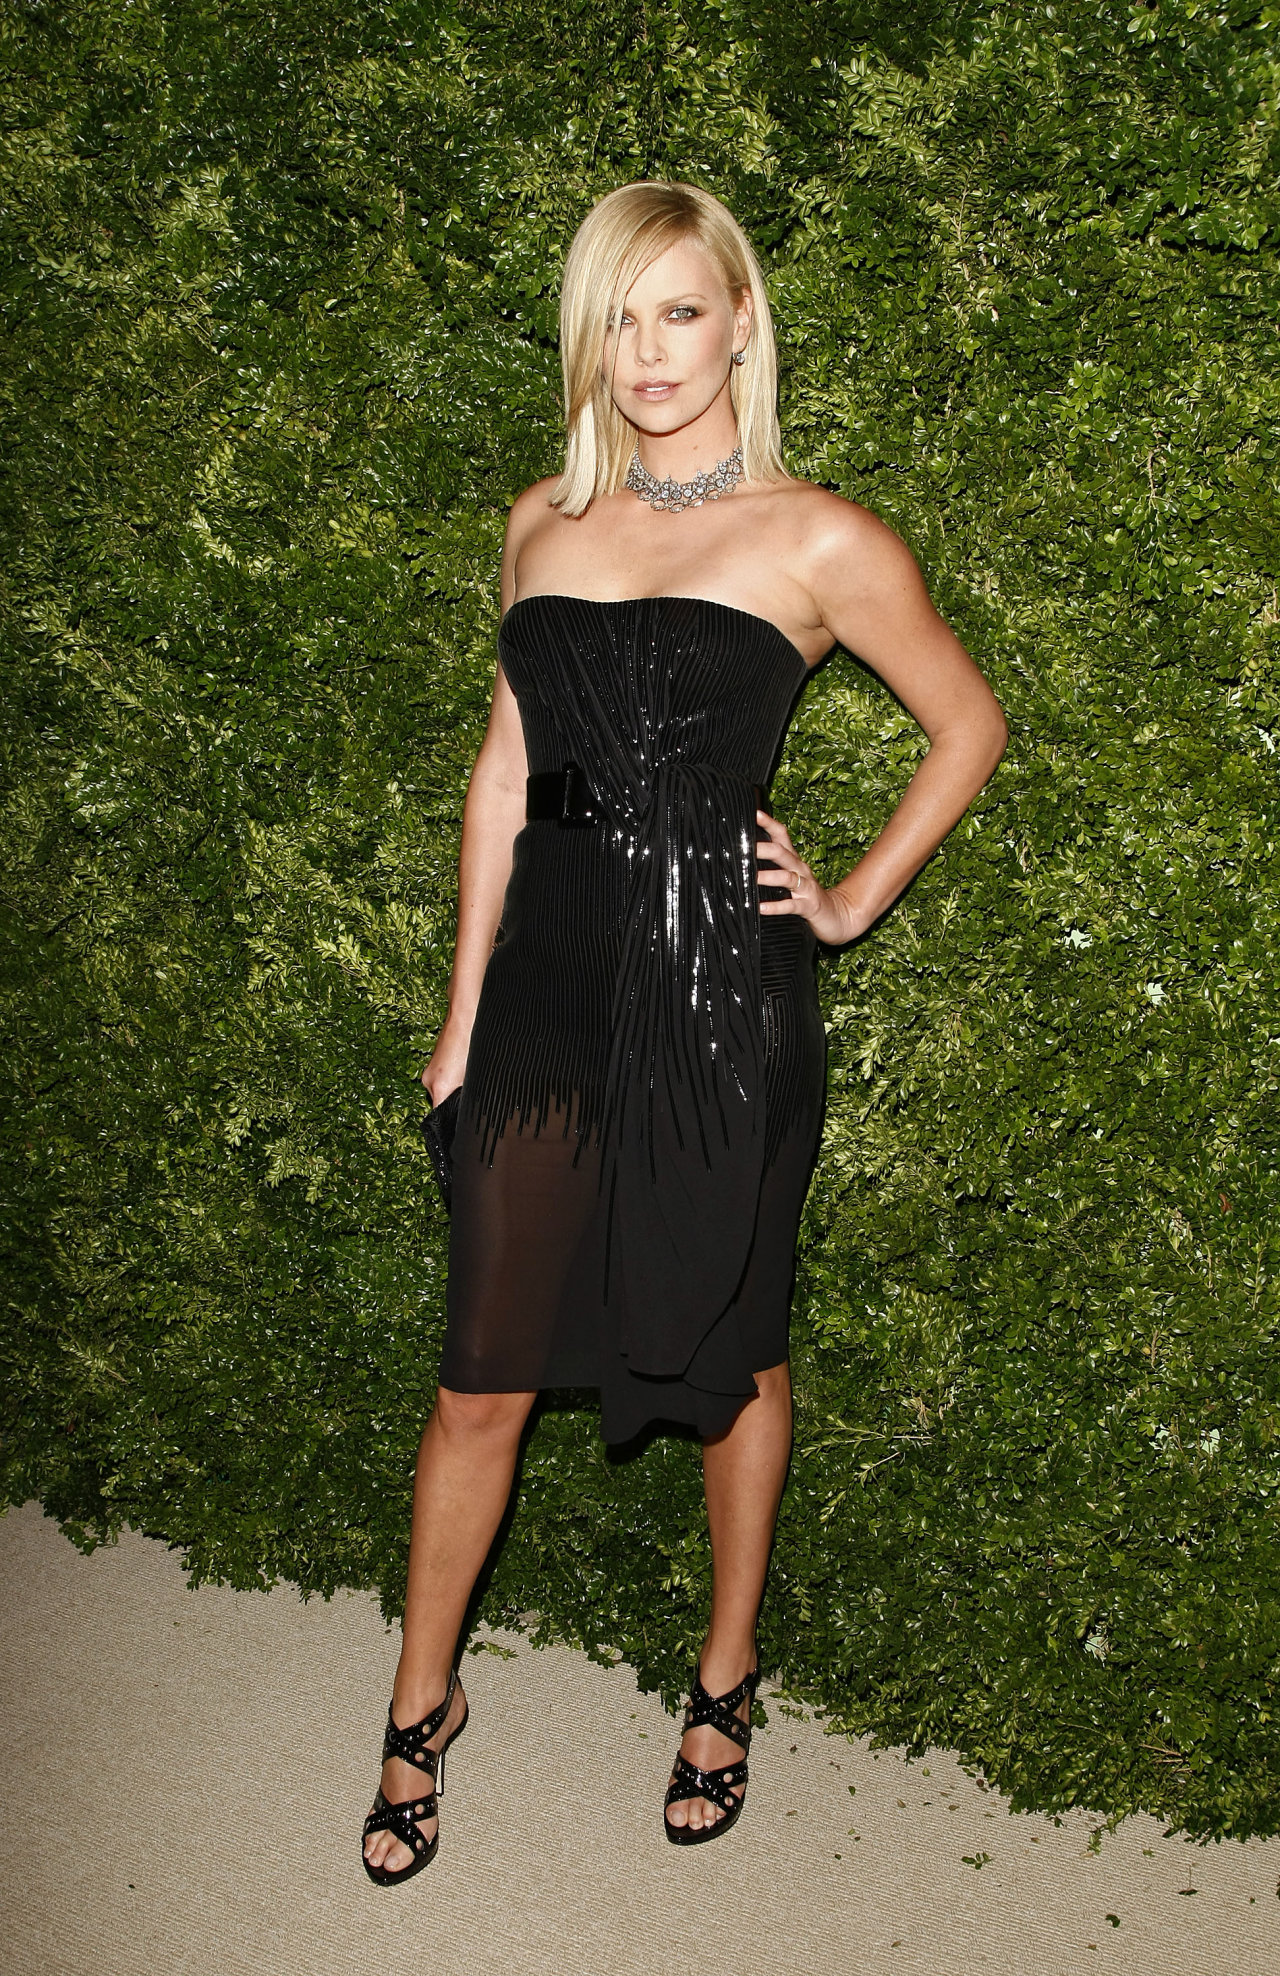 Charlize Theron in Party  SheClickcom